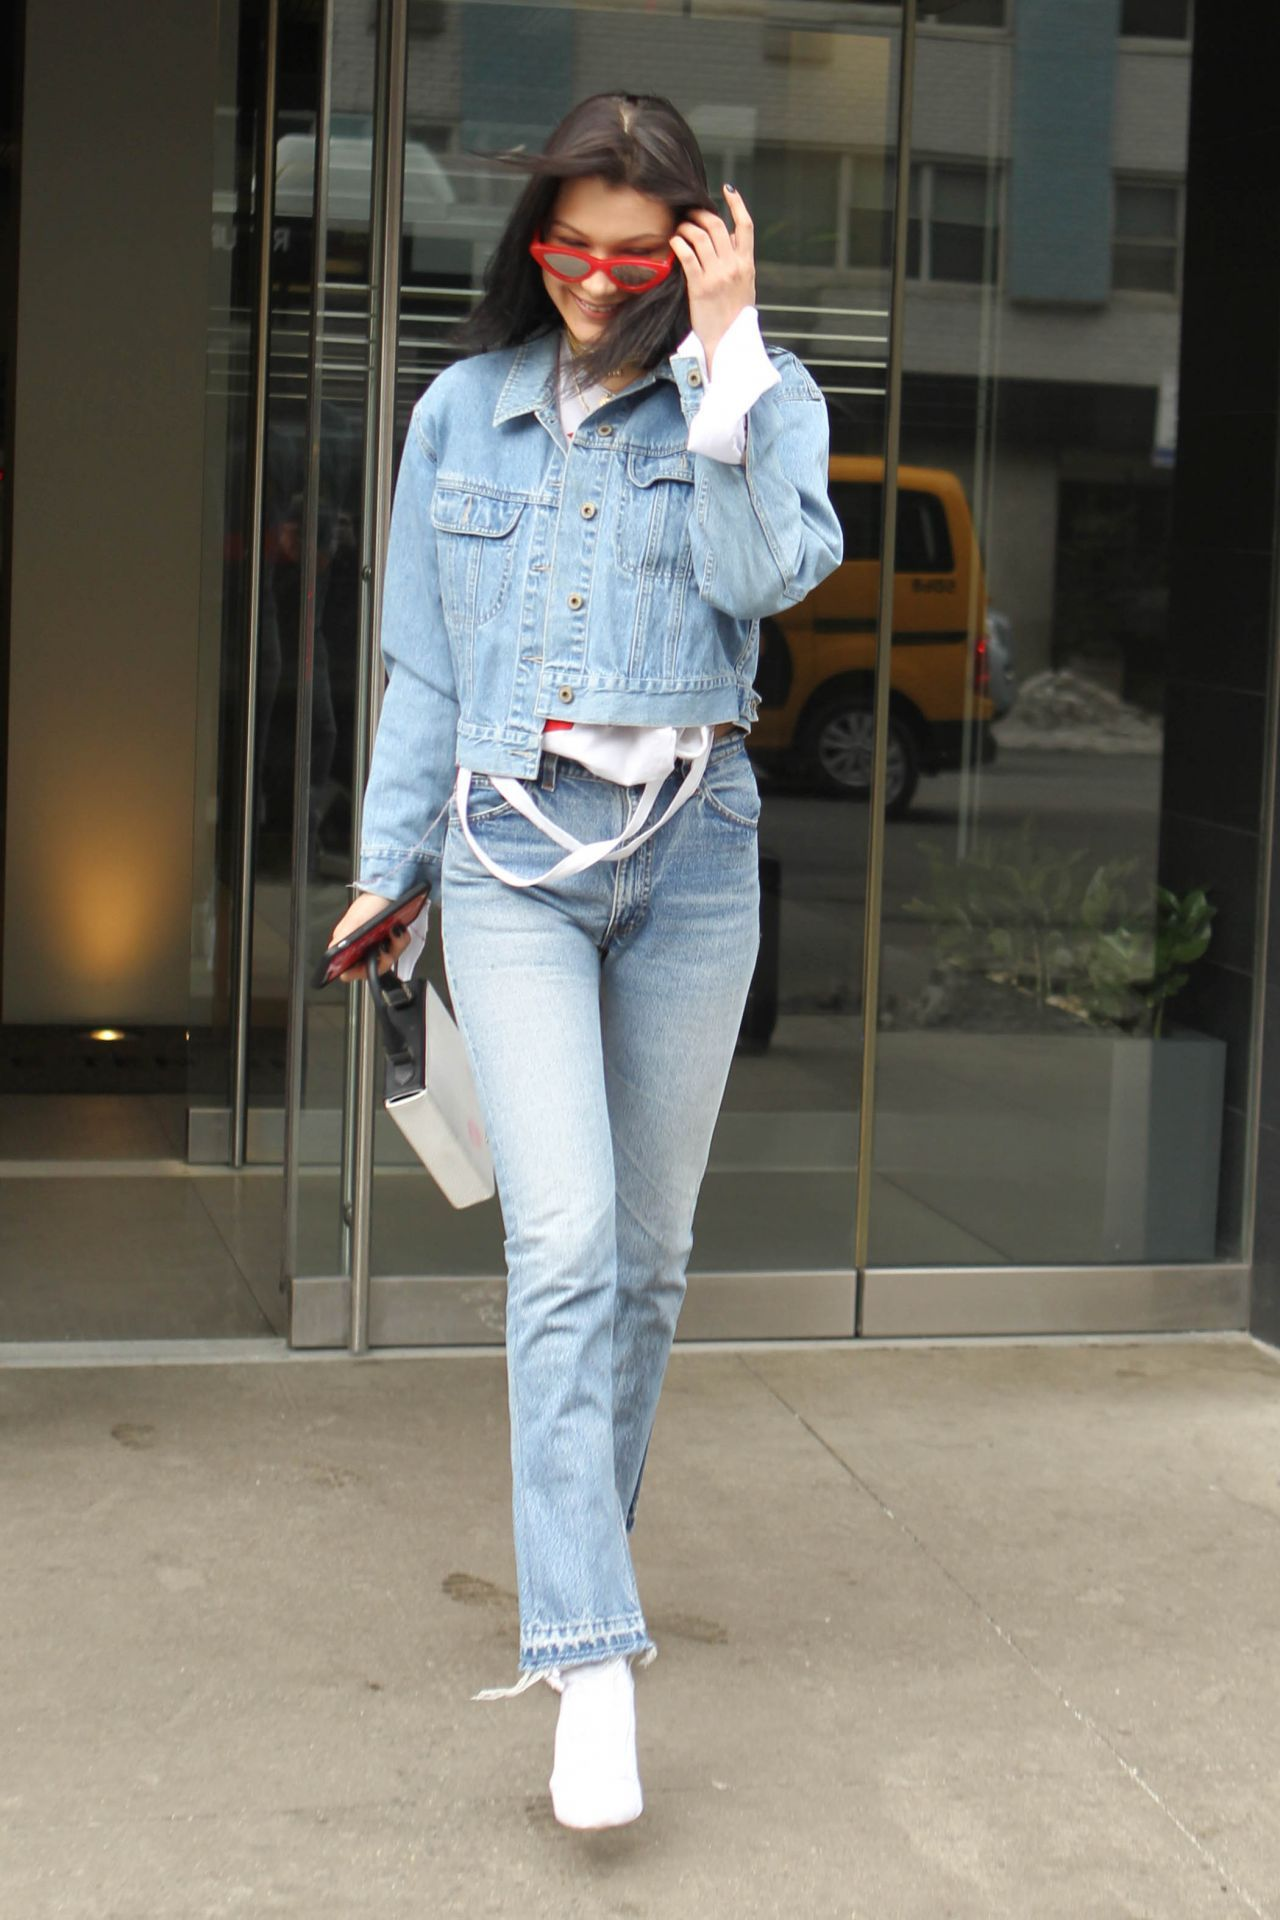 Bellahadid Bella Hadid Leaving Her Apartment In Manhattan 3 18 Inside Flats Khaky